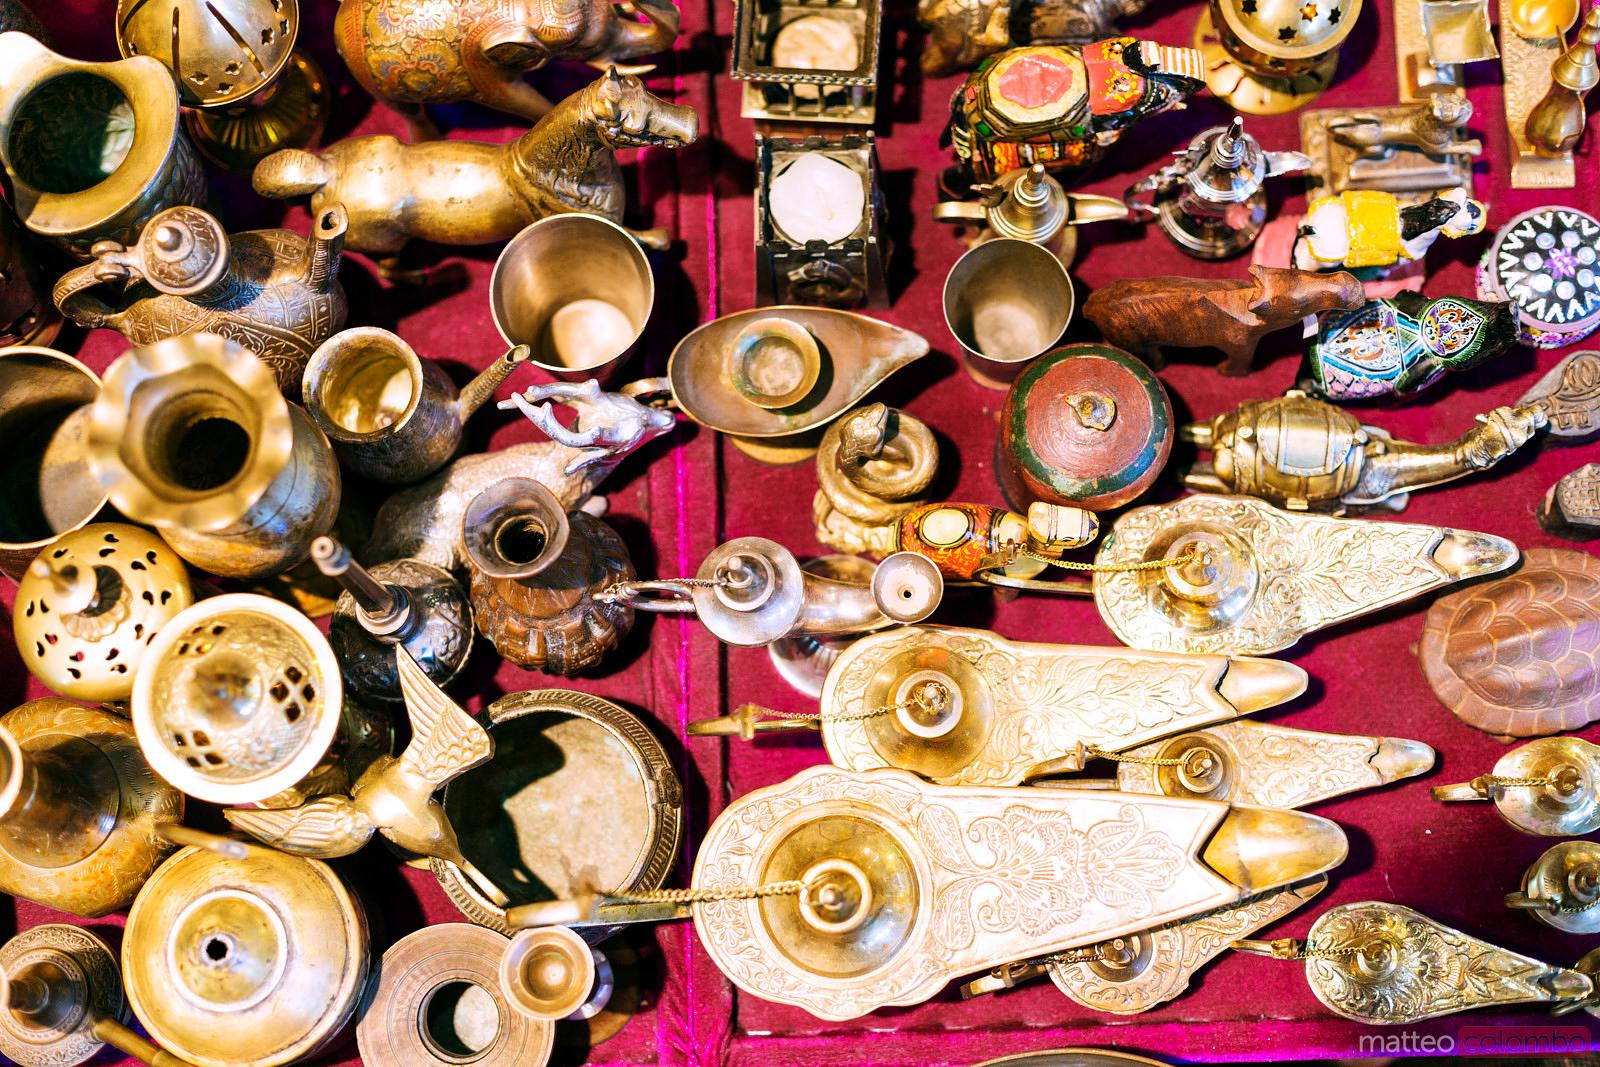 Souvenirs for sale at the old souk of Muscat, Oman